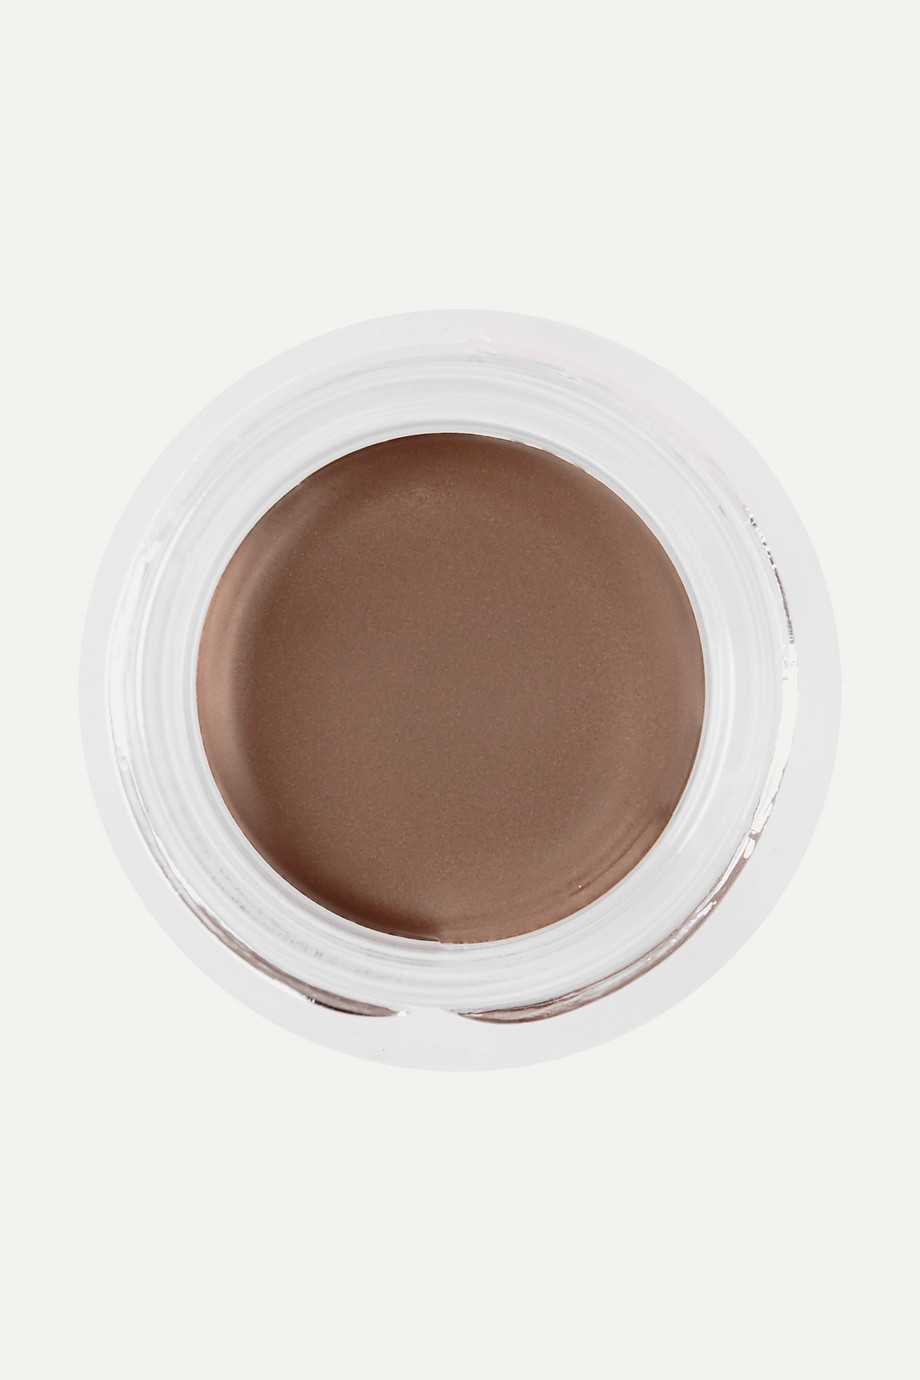 BBB LONDON Brow Sculpting Pomade - Cinnamon